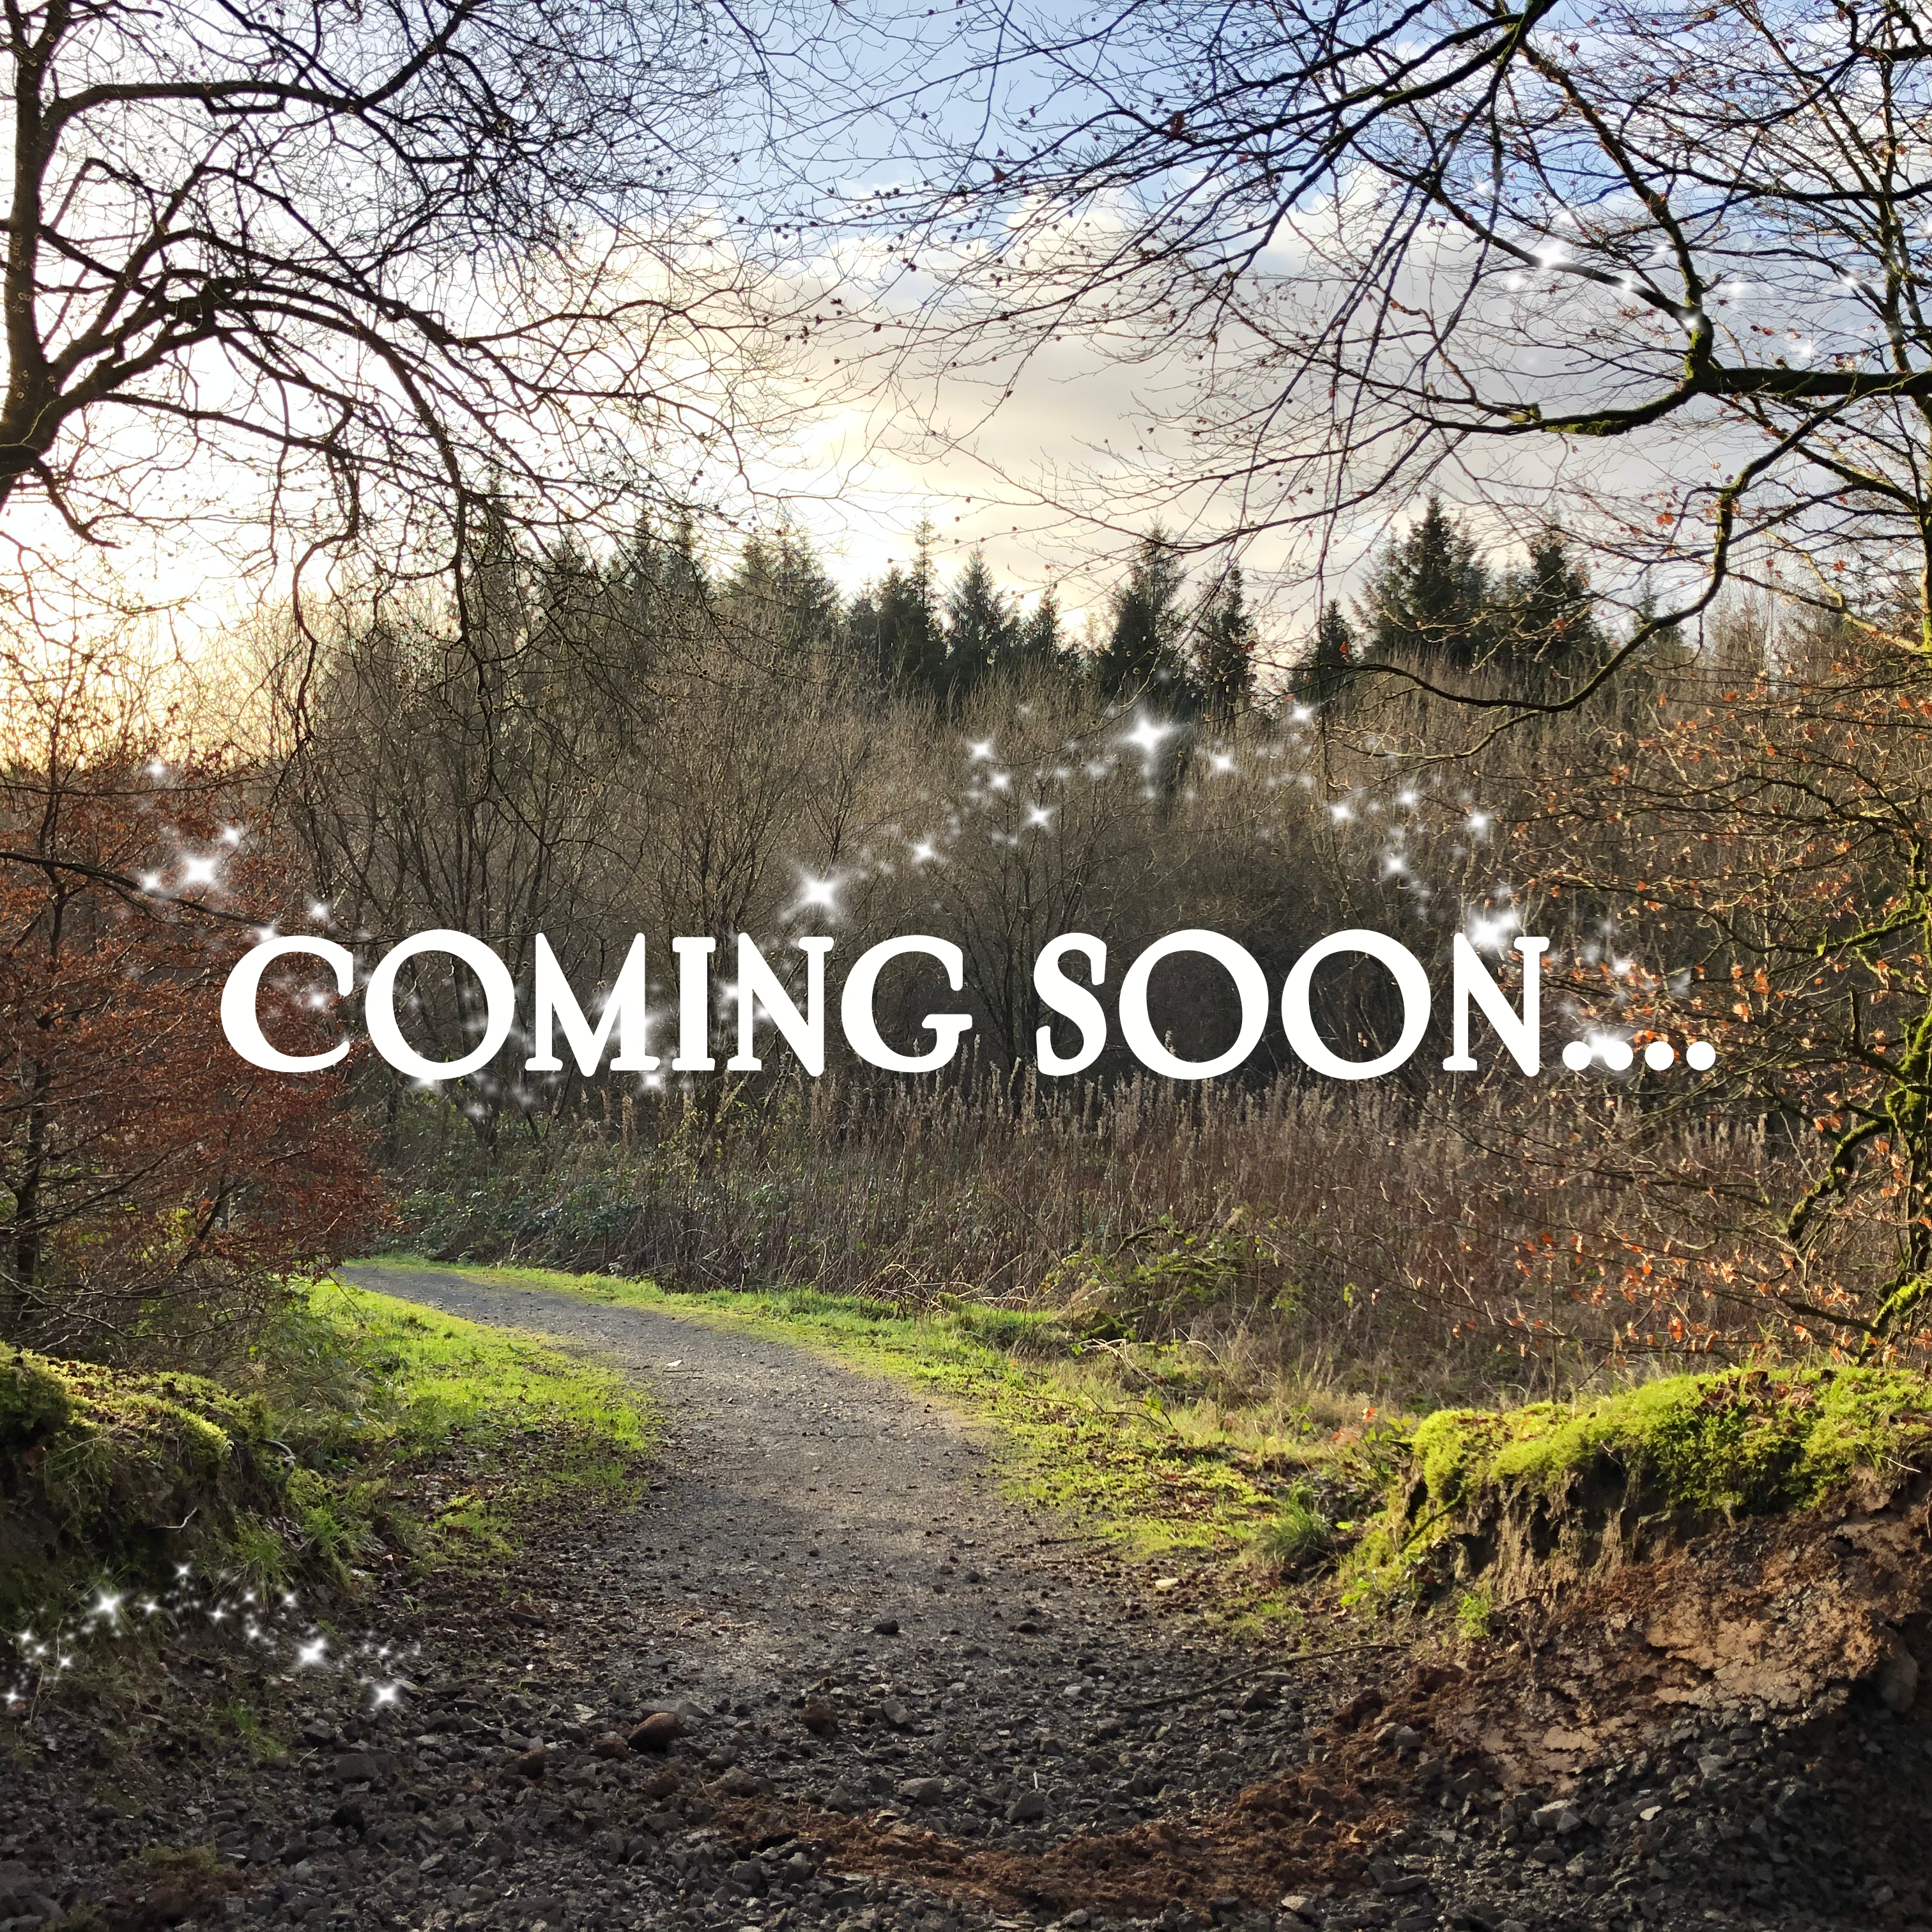 Magic Forest Trail, Pomeroy Forest, Interpretive Trail Designers, coming soon